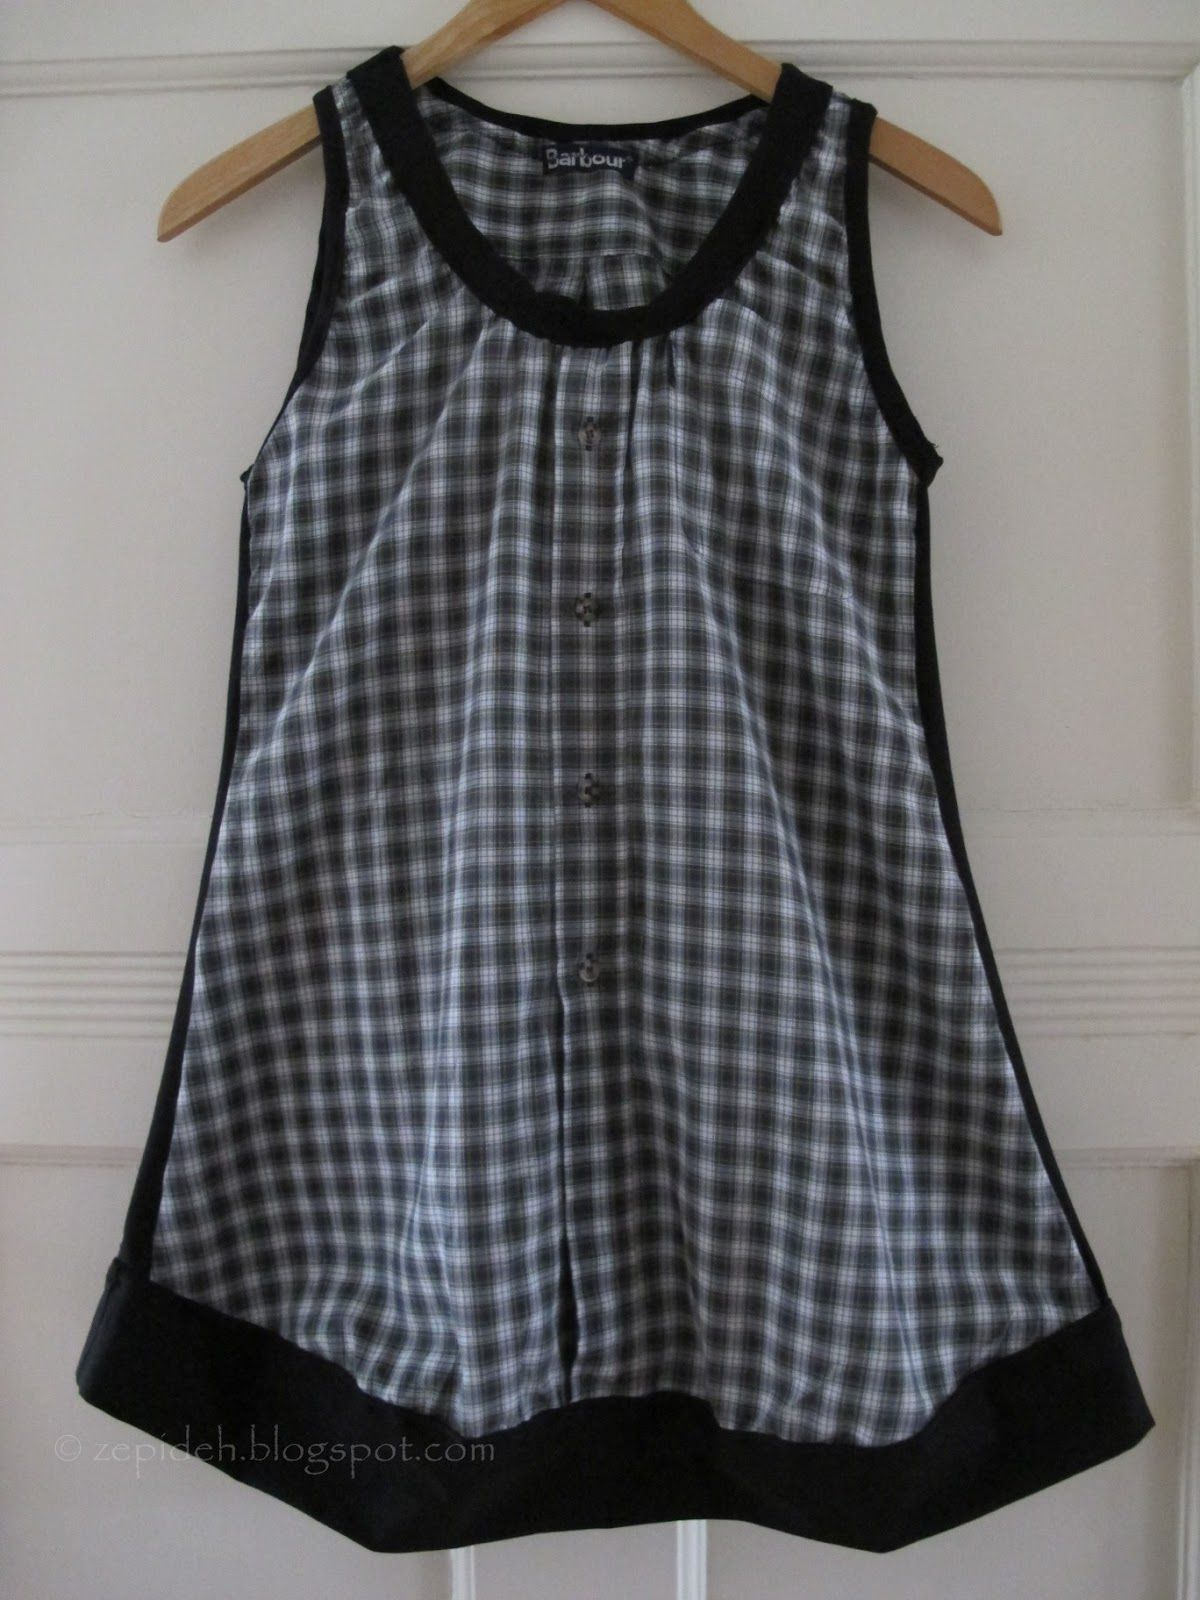 17 Best images about Kleider on Pinterest | Flannel tunic, Diy dress ...